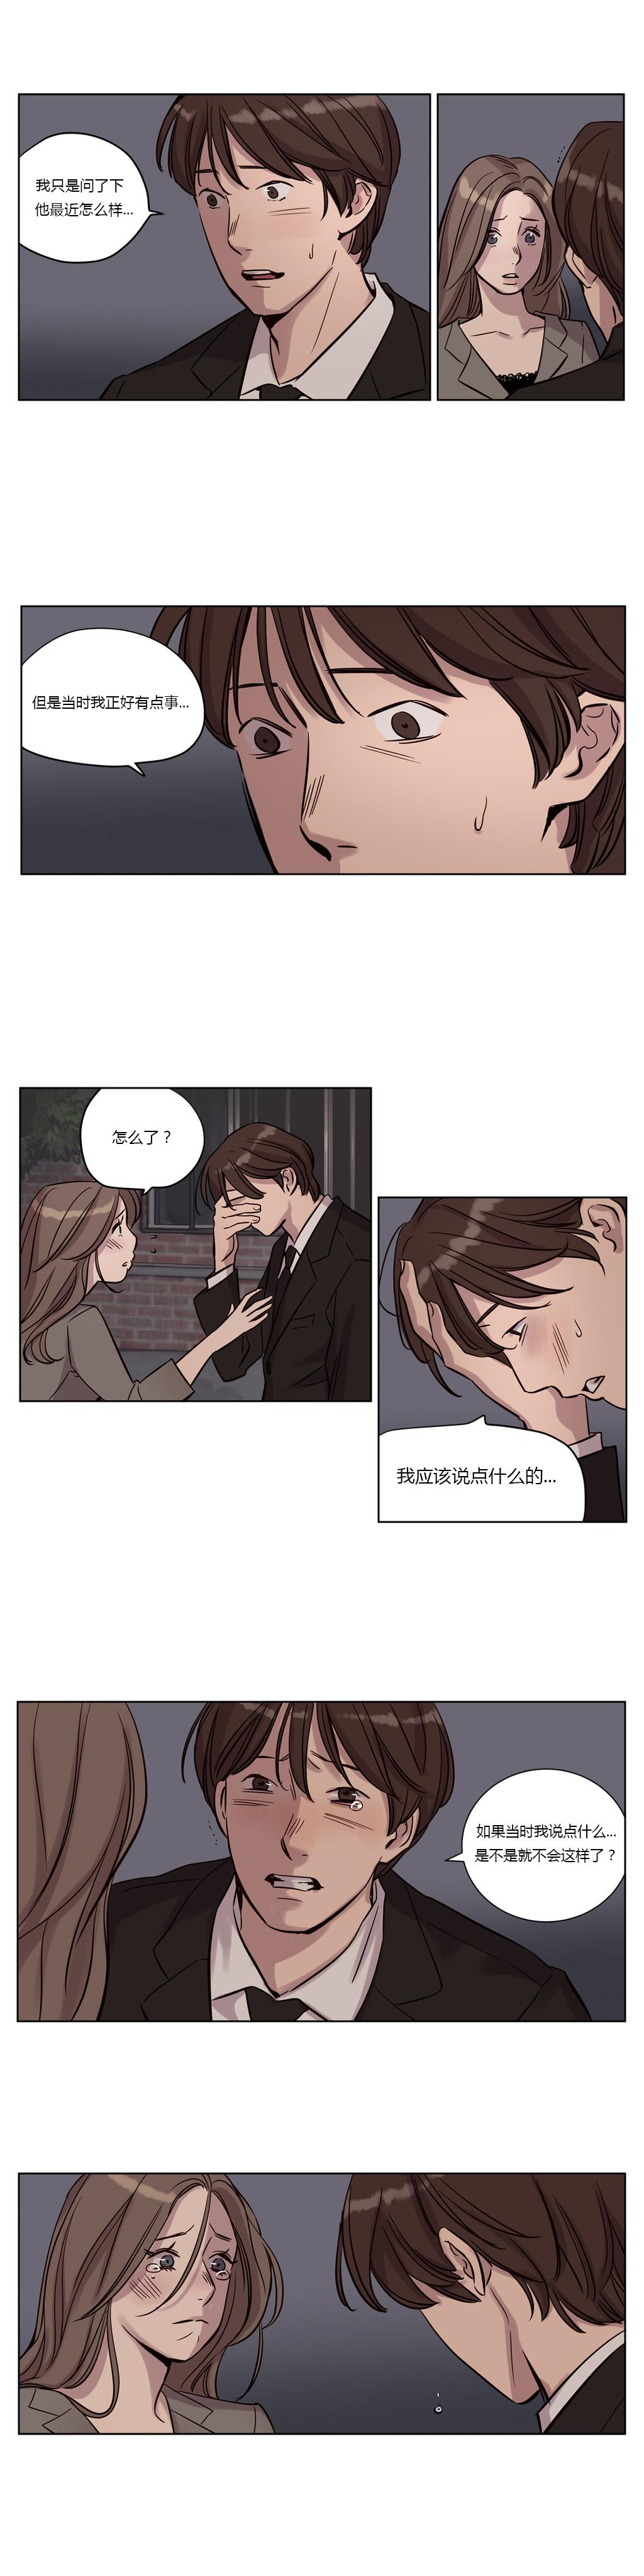 Atonement Camp Ch.0-34 179